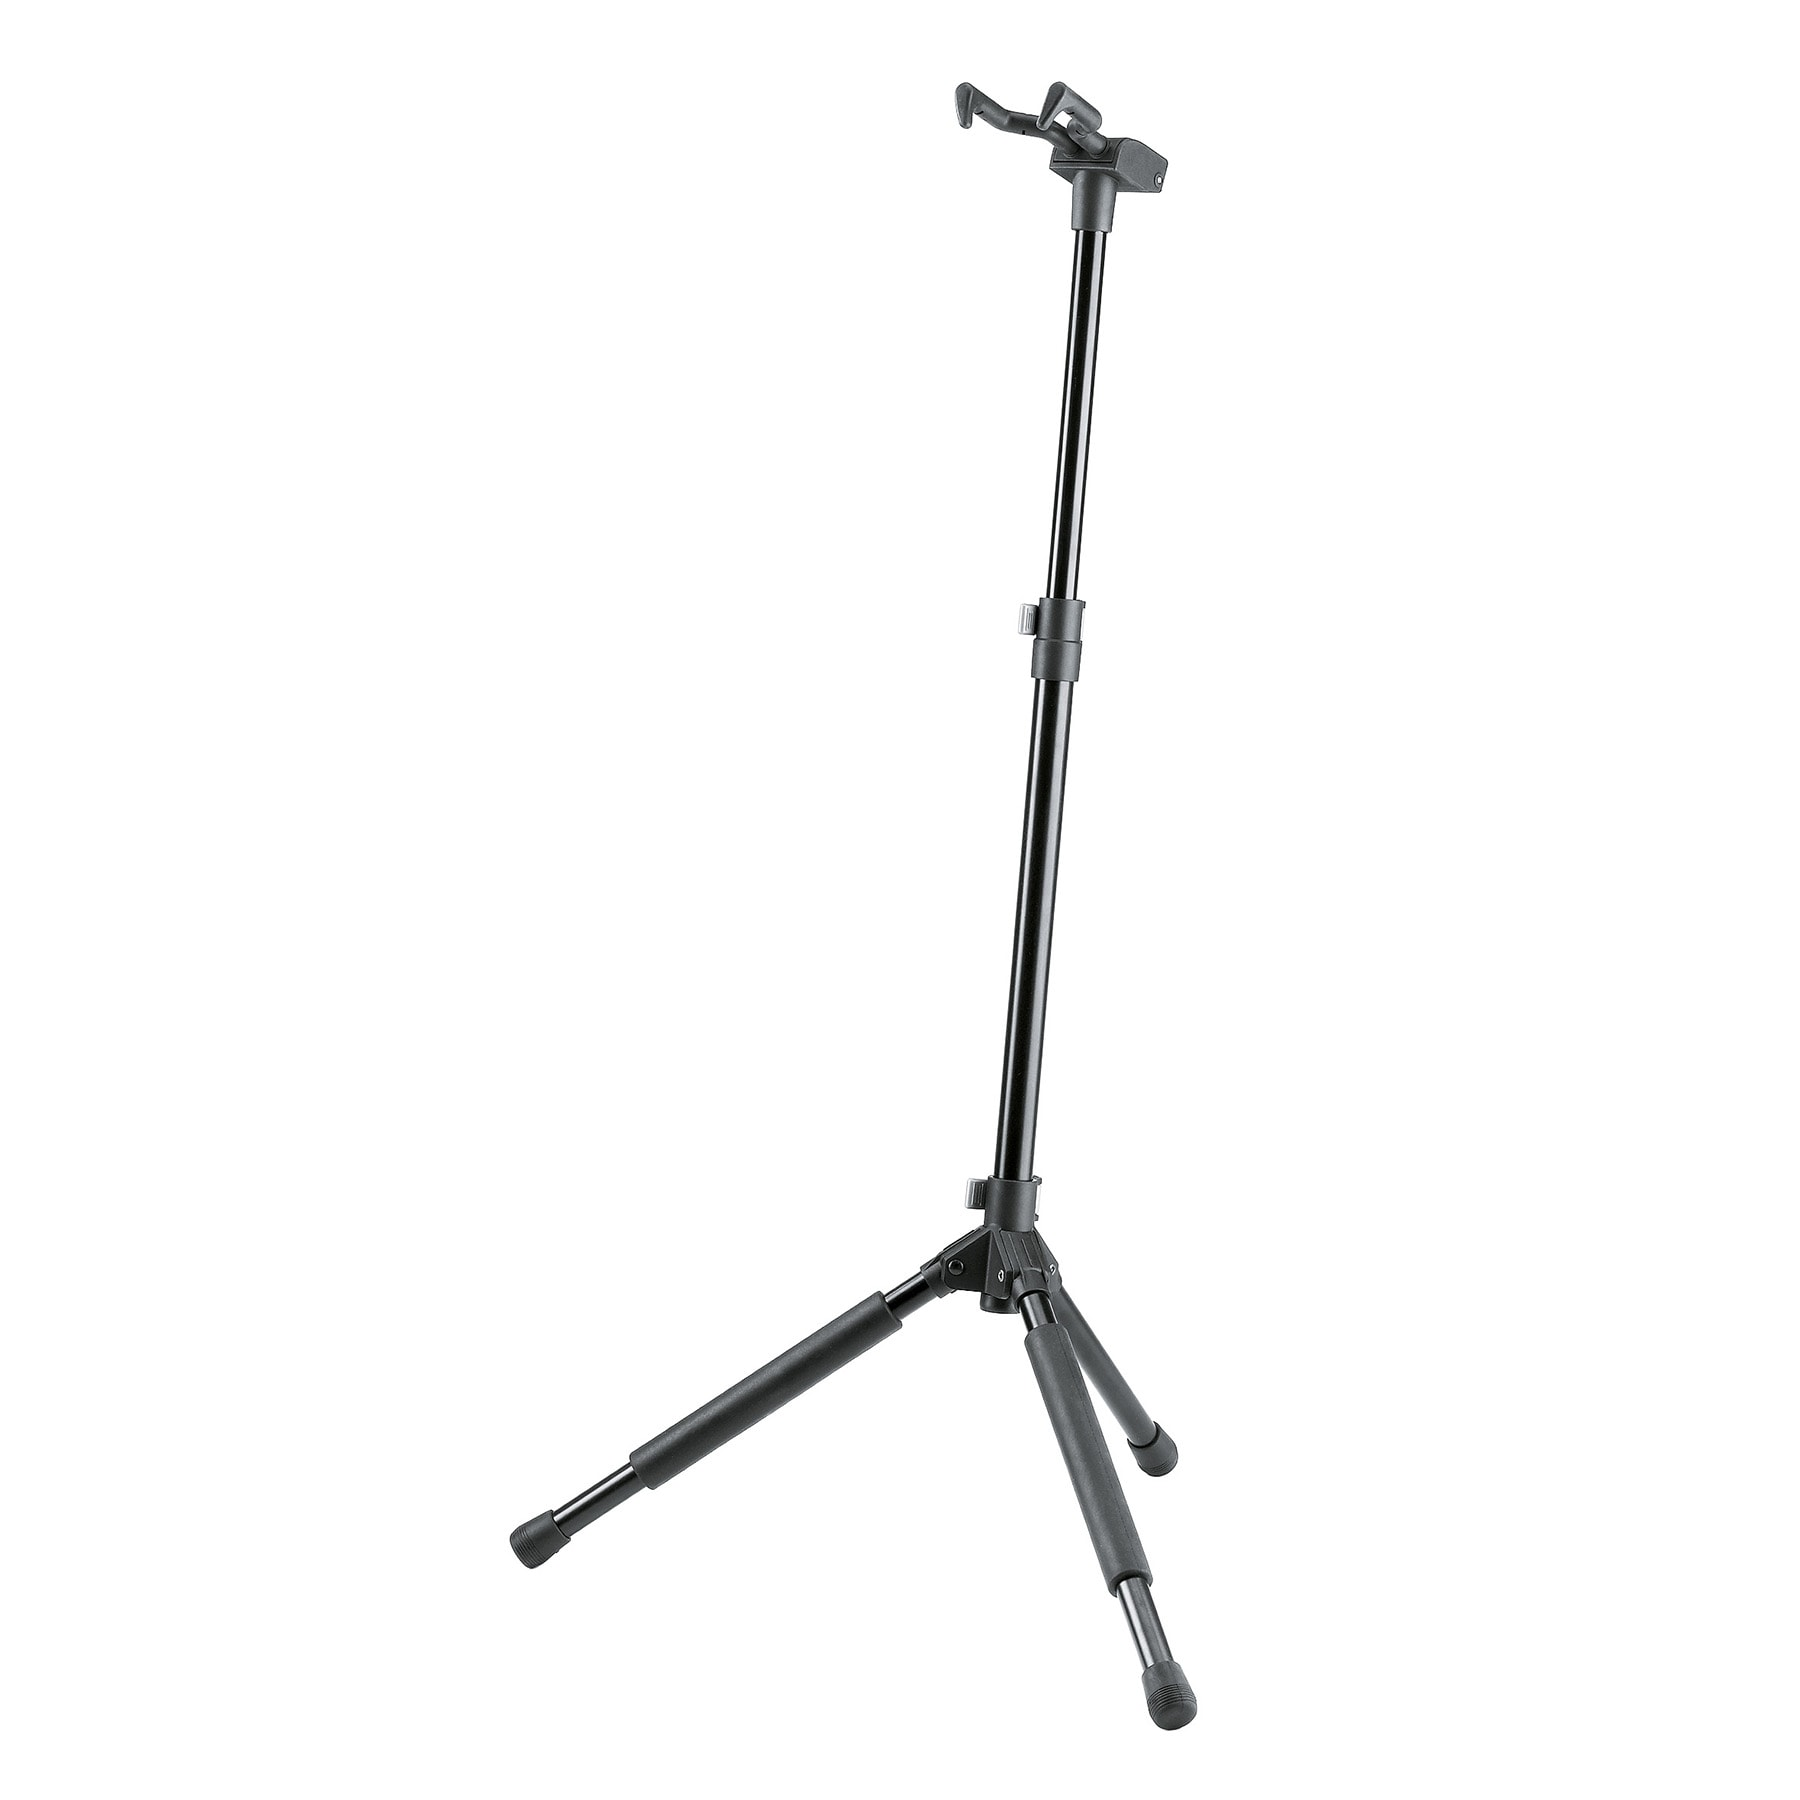 KM17670 - Guitar stand »memphis pro«